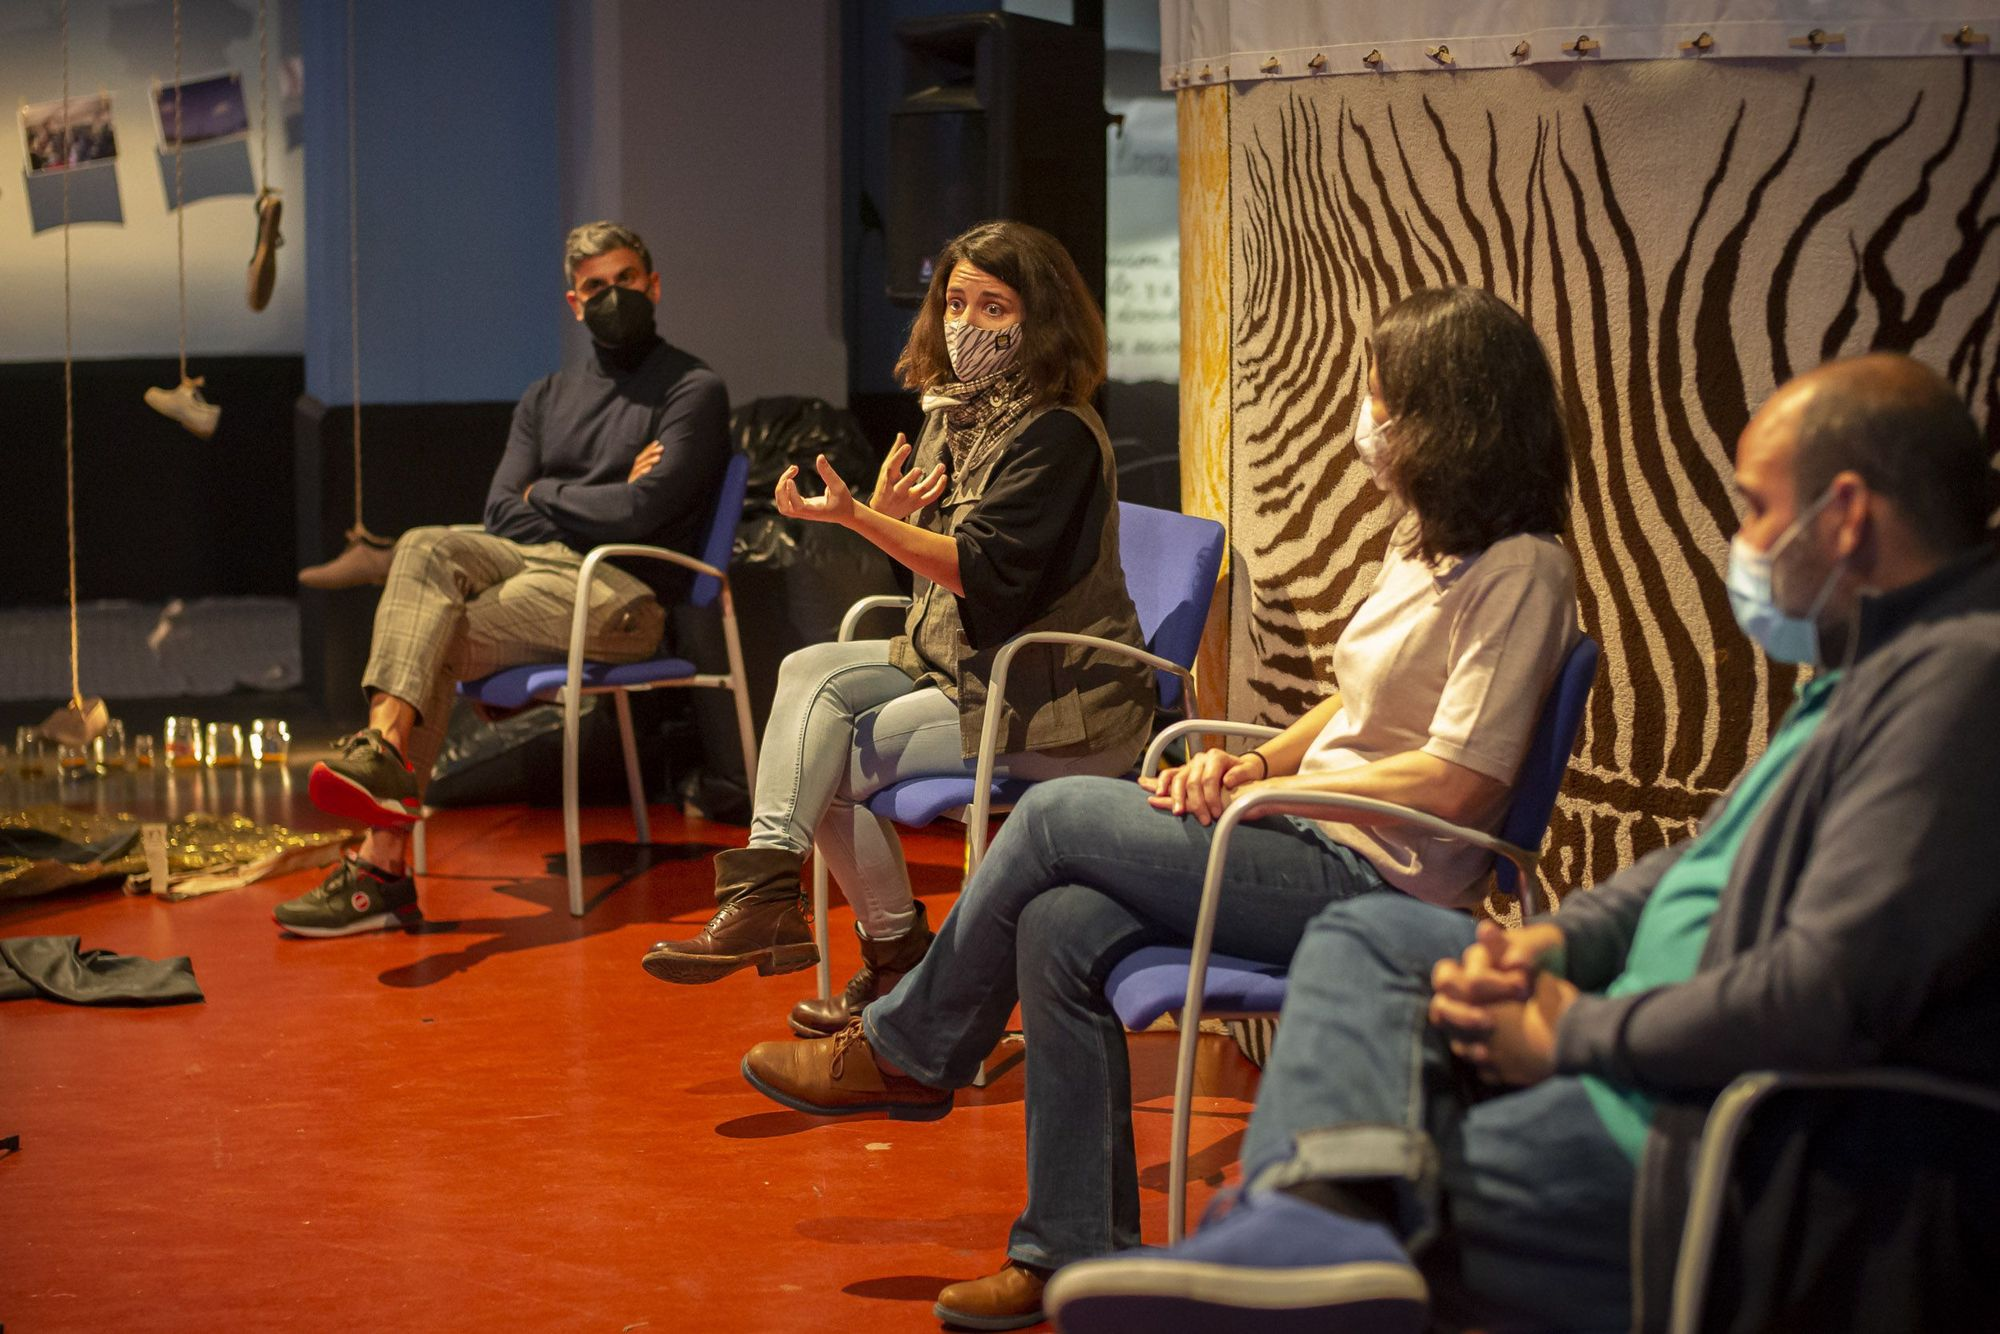 Round table 'Islas Cage' in the Insular Theater Hall